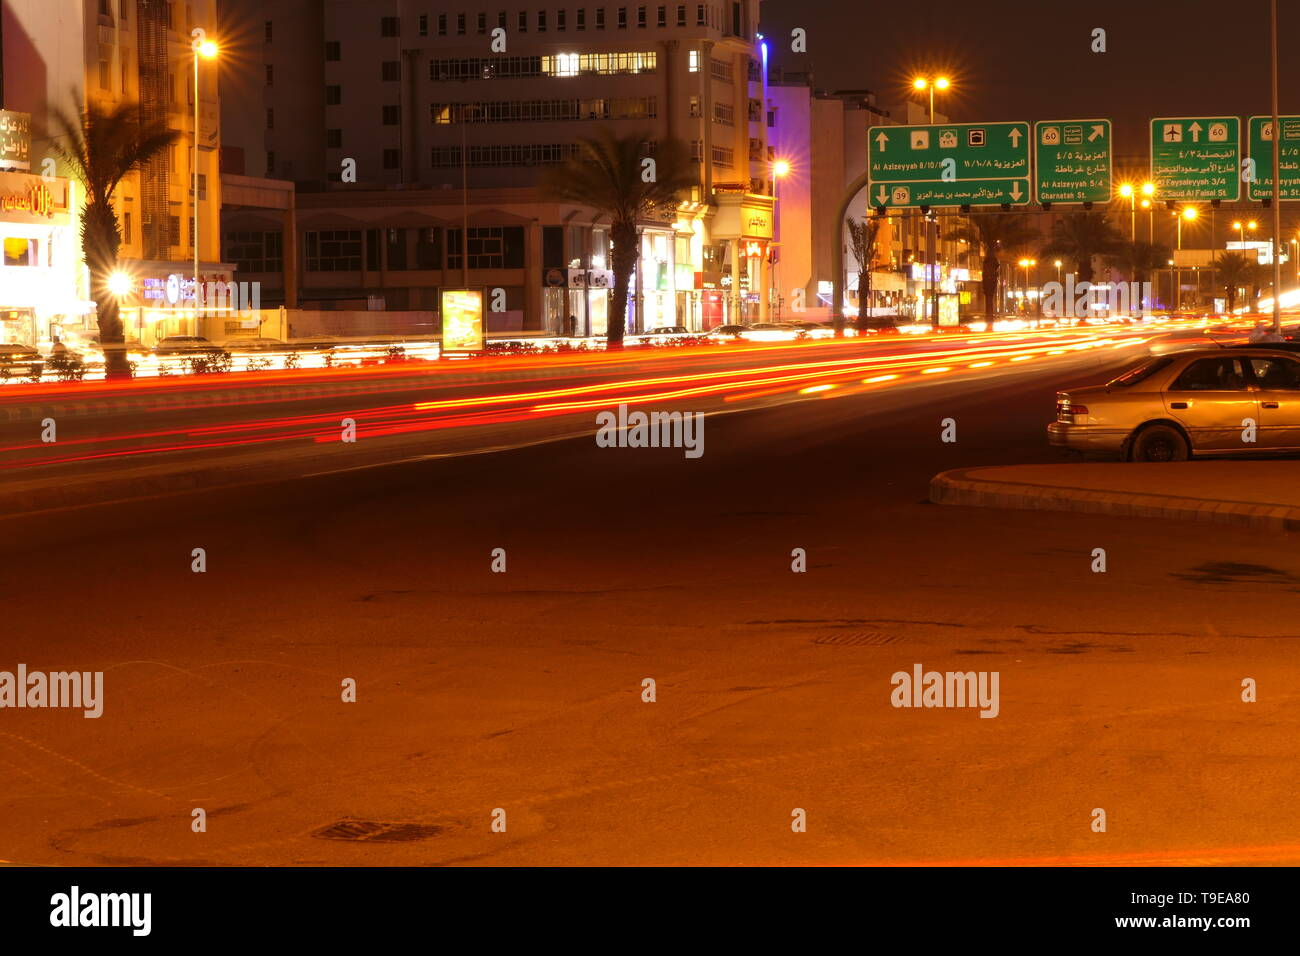 Busy traffic at night, on the famous Tahlia Street In Jeddah, Saudi Arabia - Stock Image